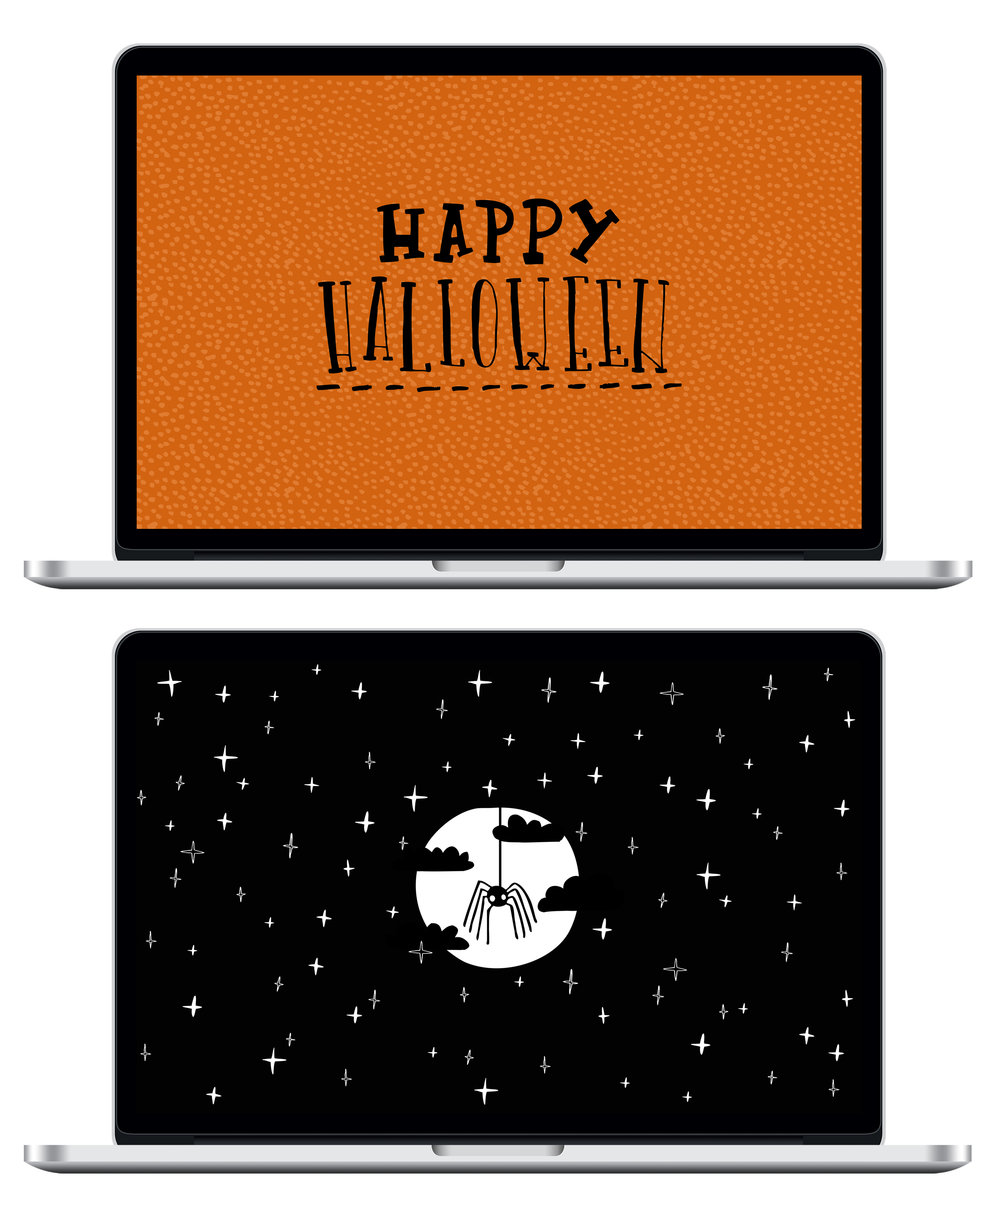 BLOG-Freebies-HalloweenDesktopMockUps.jpg